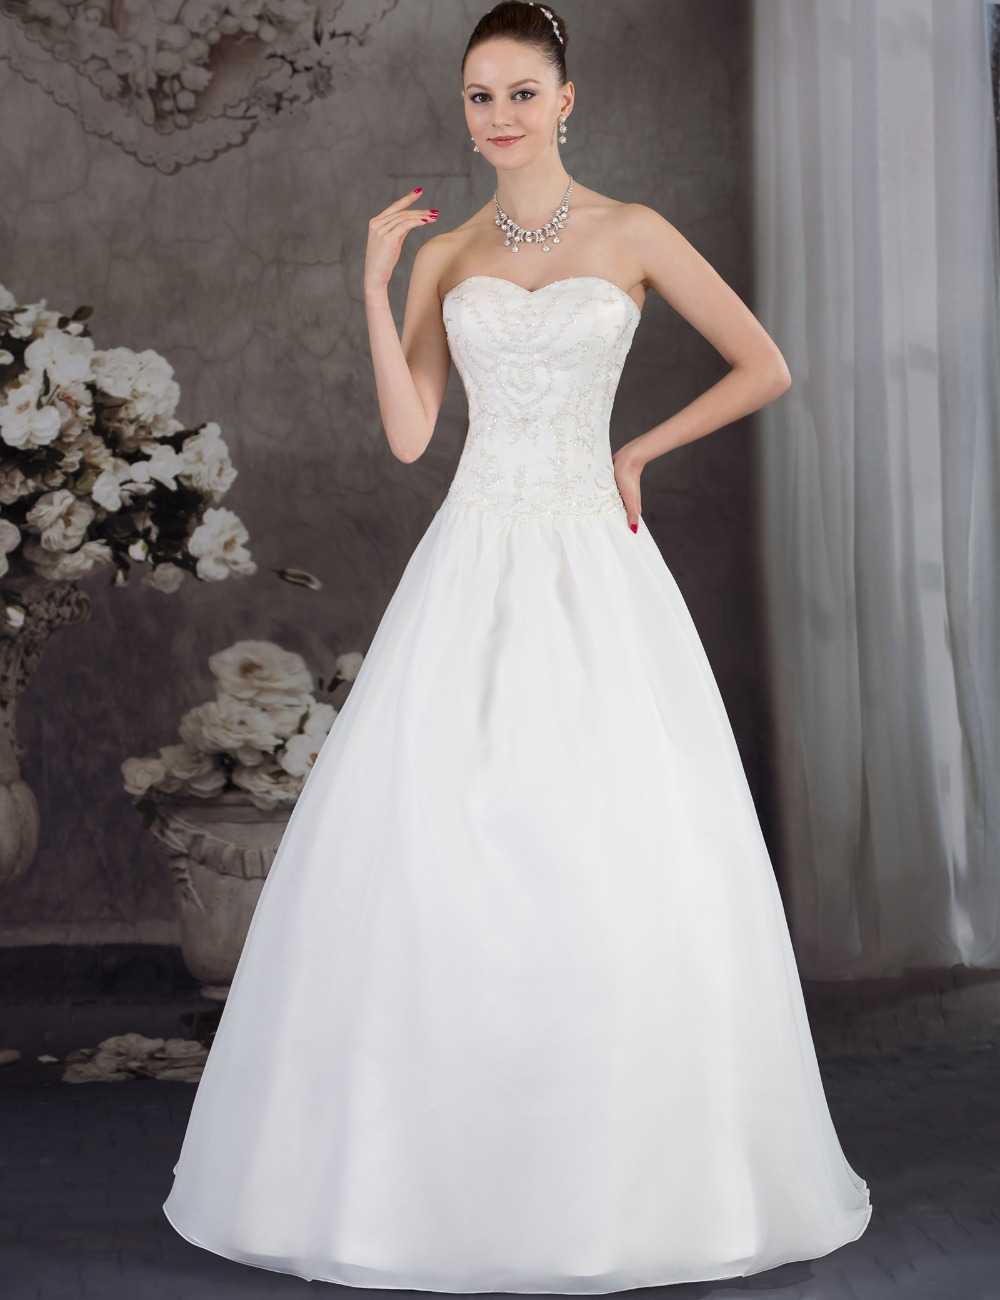 Wedding Dresses Real : Bridal real sexy ball gown bride dresses long flowers satin wedding